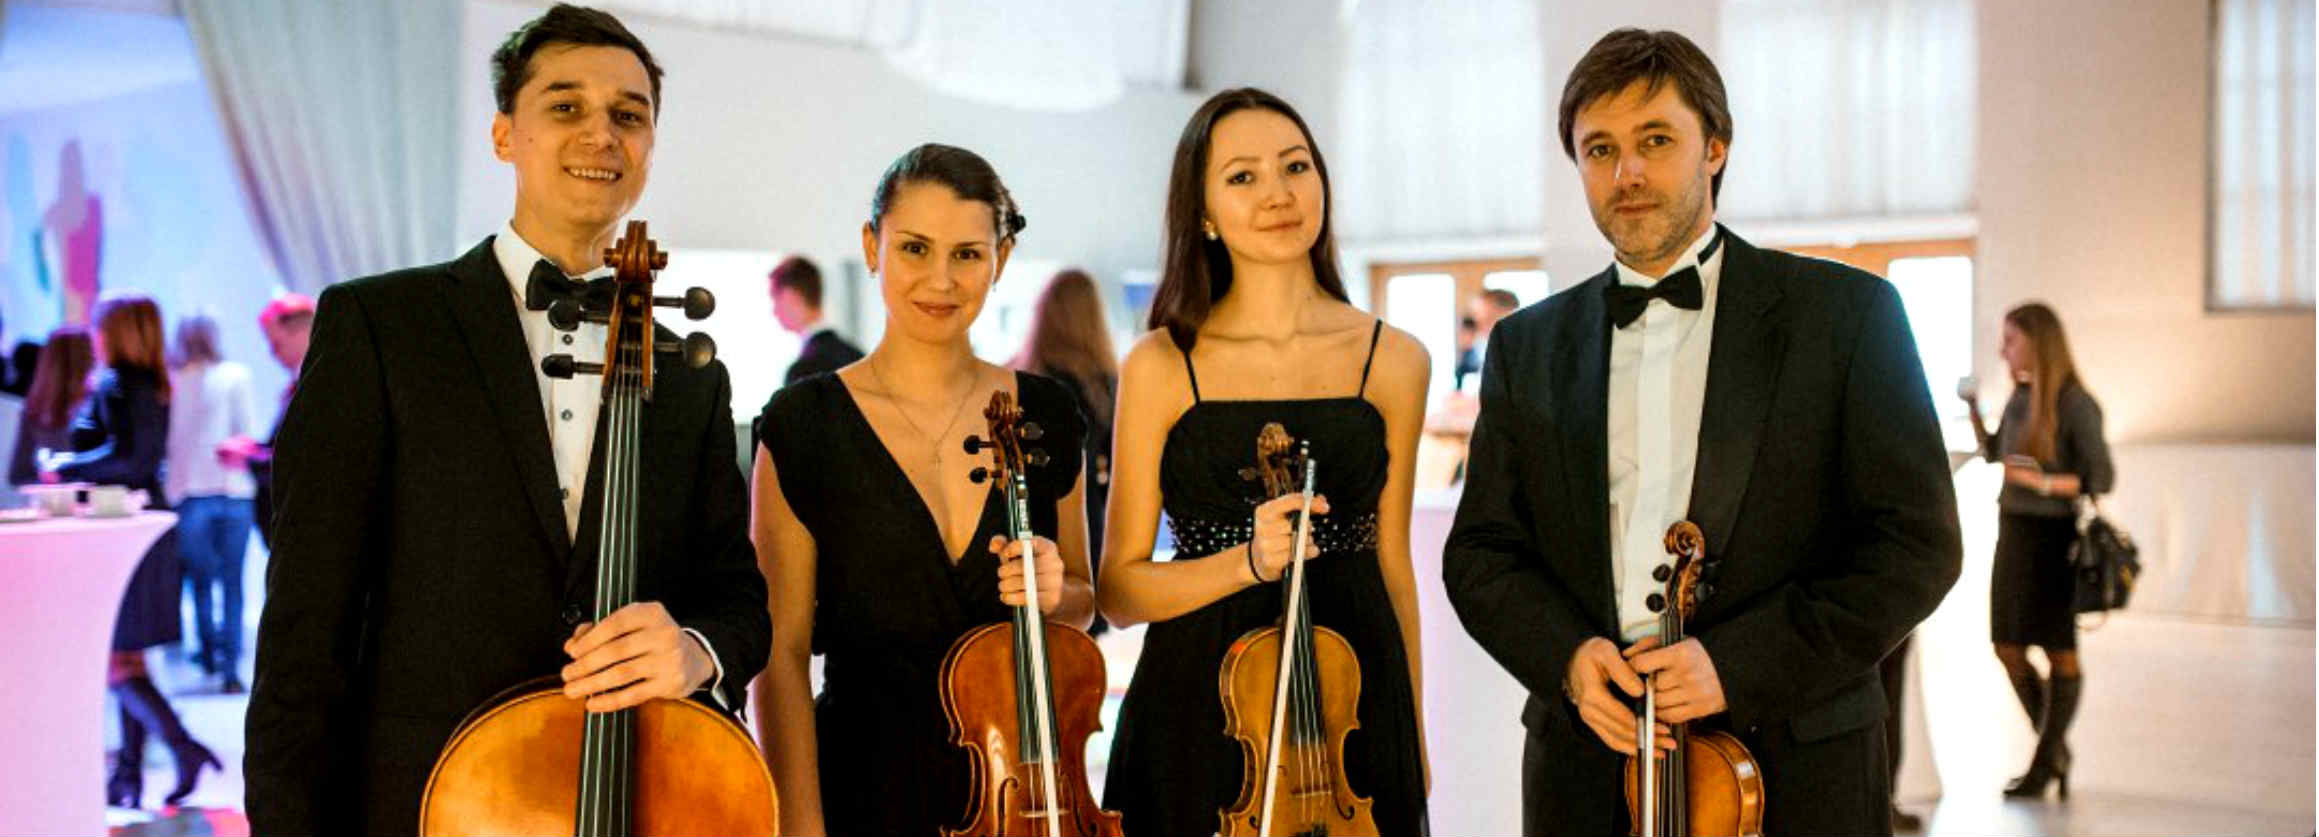 Los Angeles String Quartet: ceremony music,string quartet for corporate events, string quo, string trio